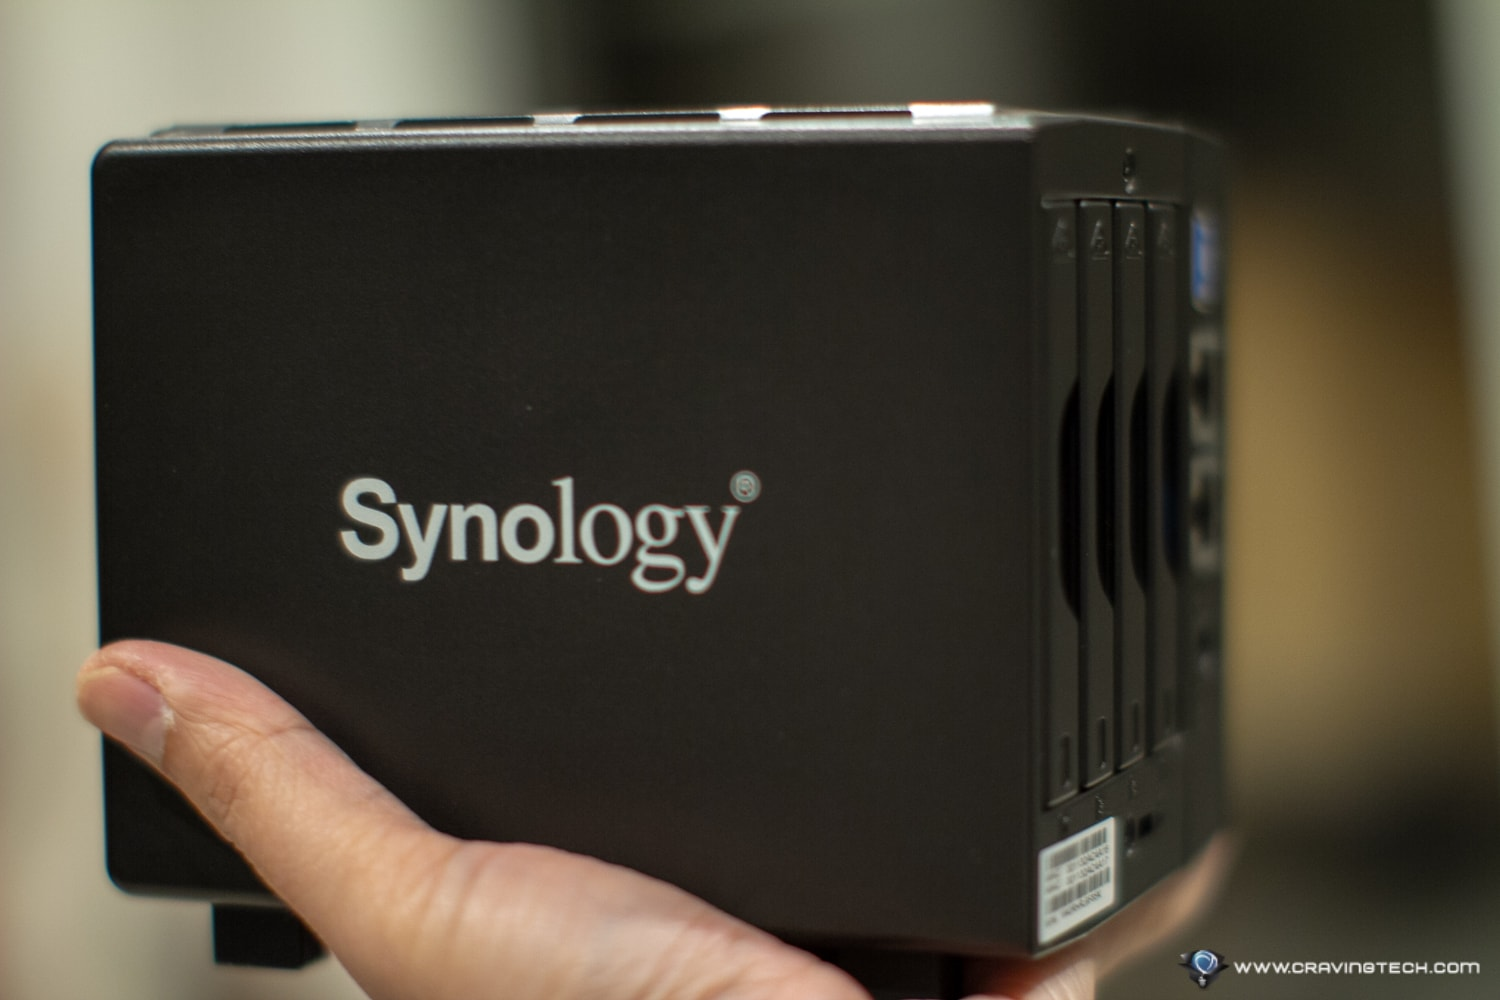 Synology DiskStation DS419slim compact NAS